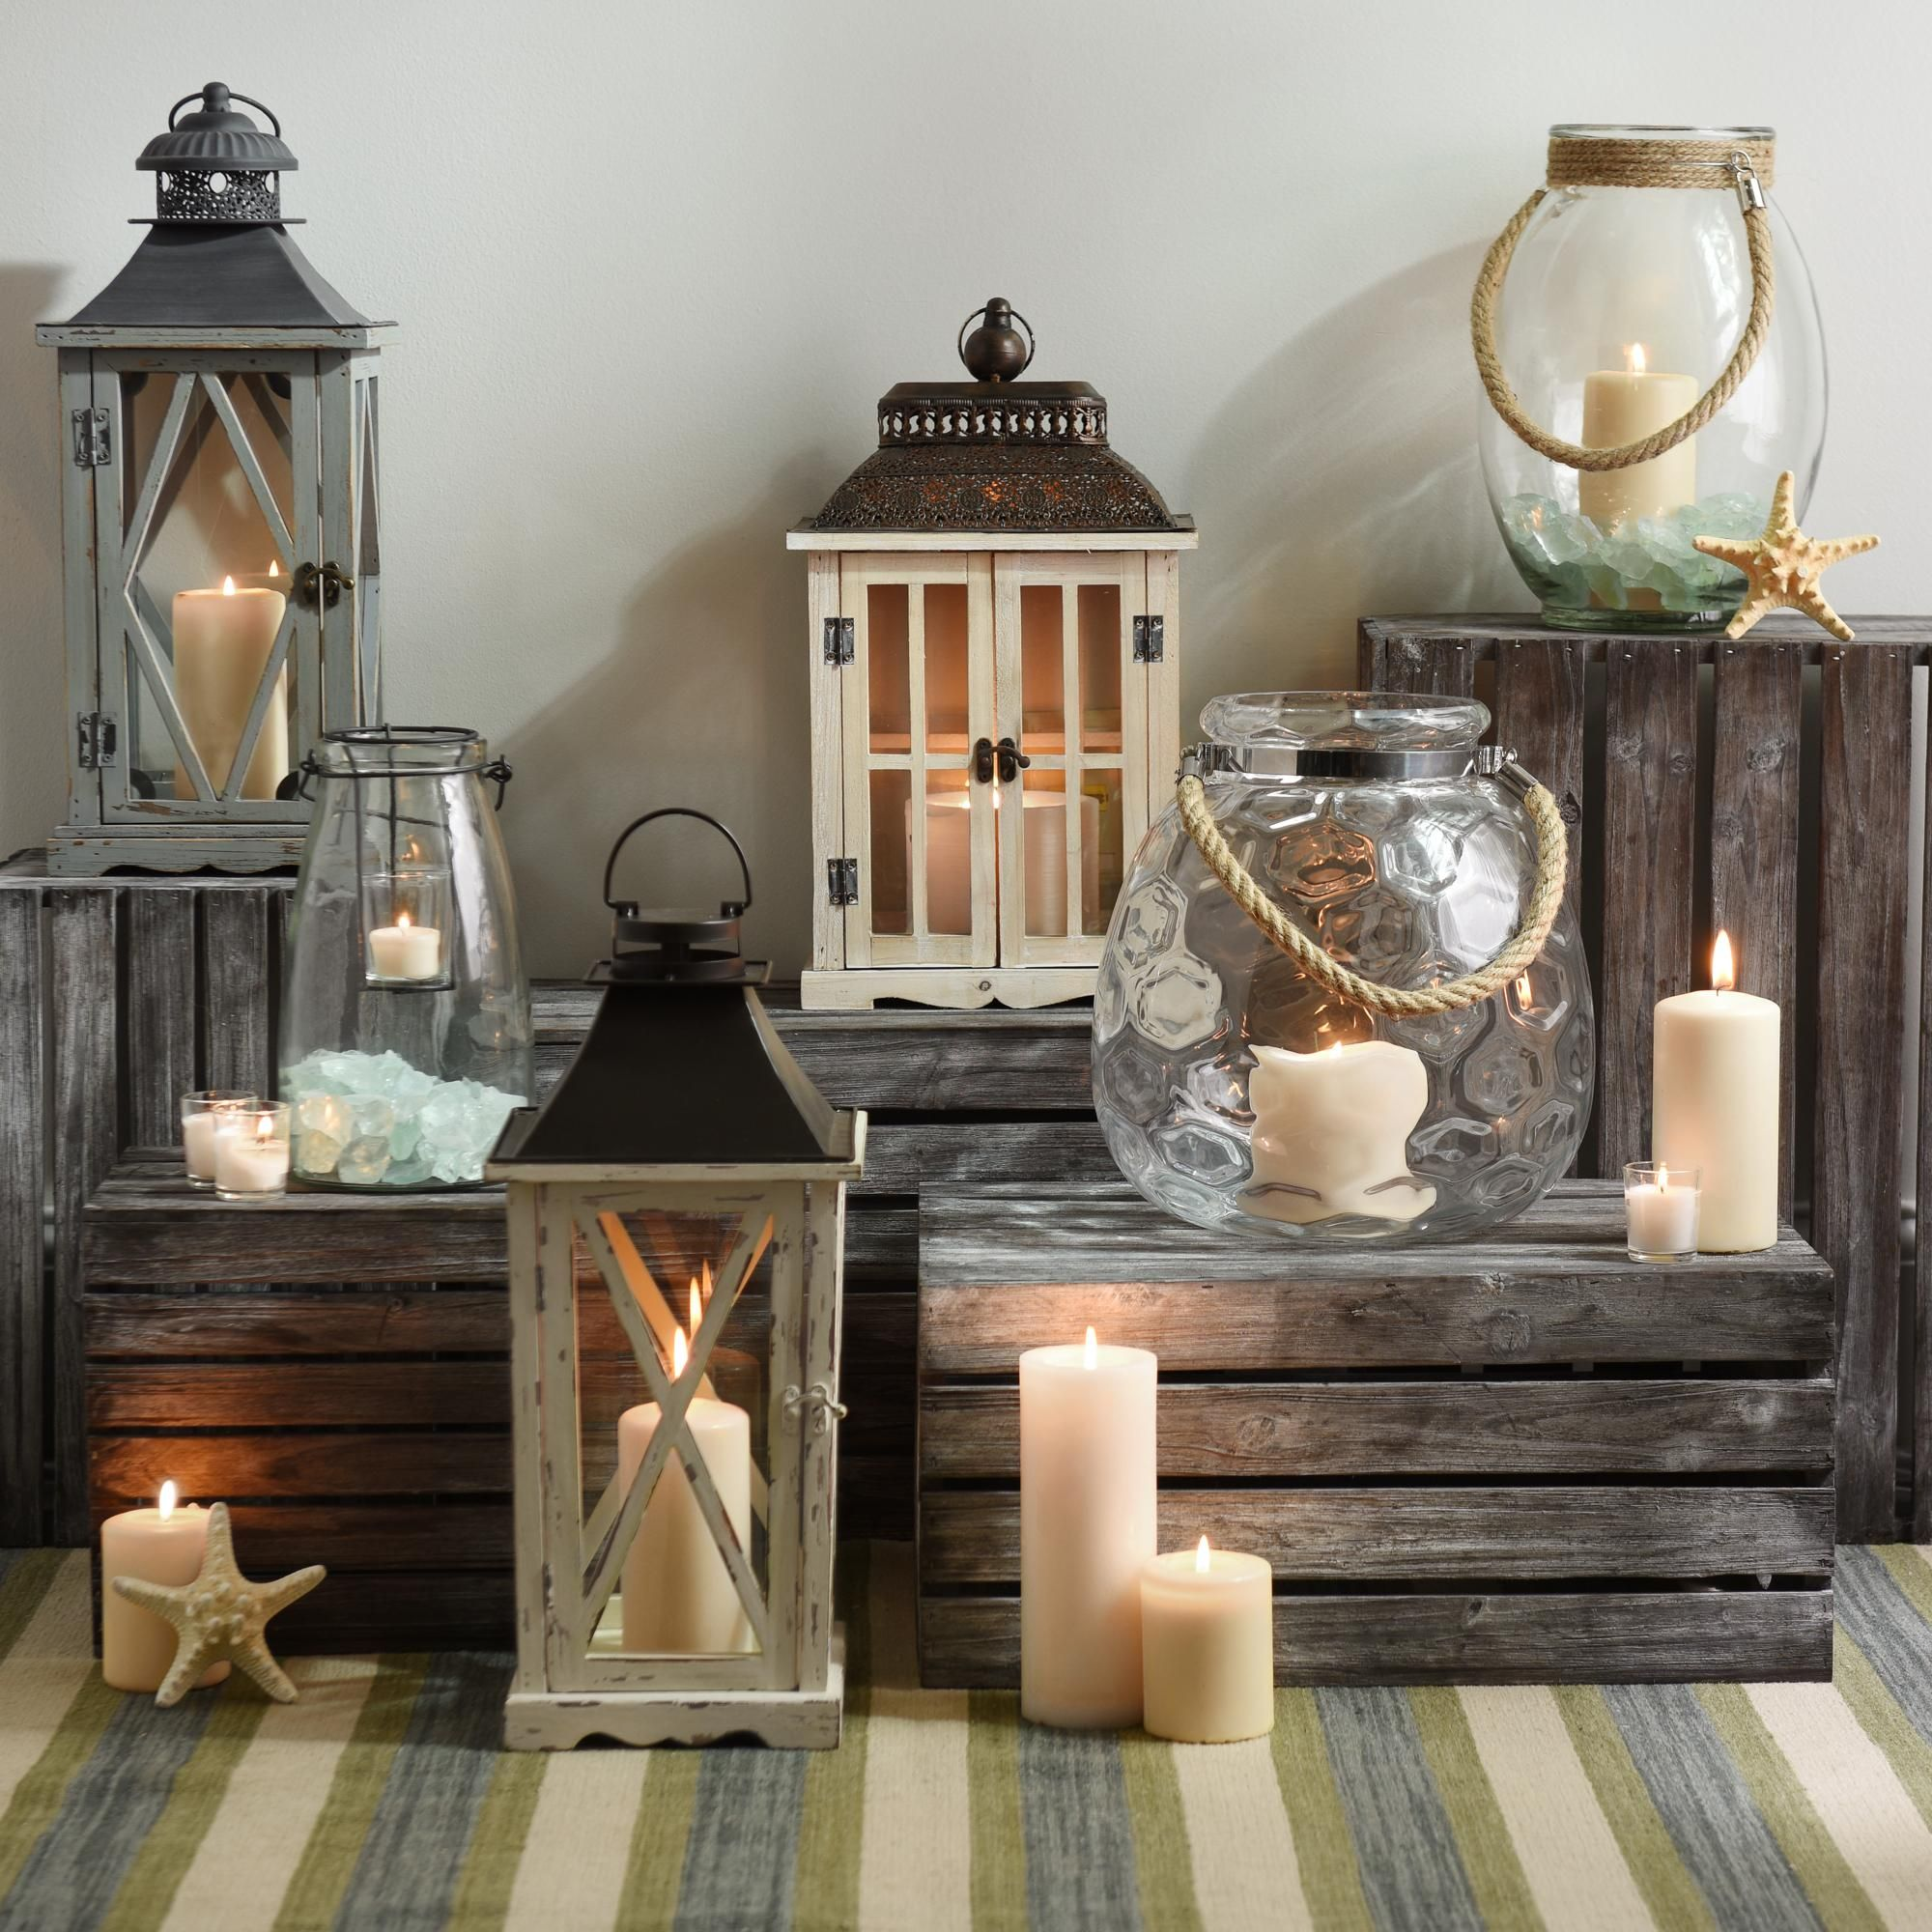 Add whimsy and magic with lanterns from Kirkland's! All ... on Lanterns At Kirklands id=13648